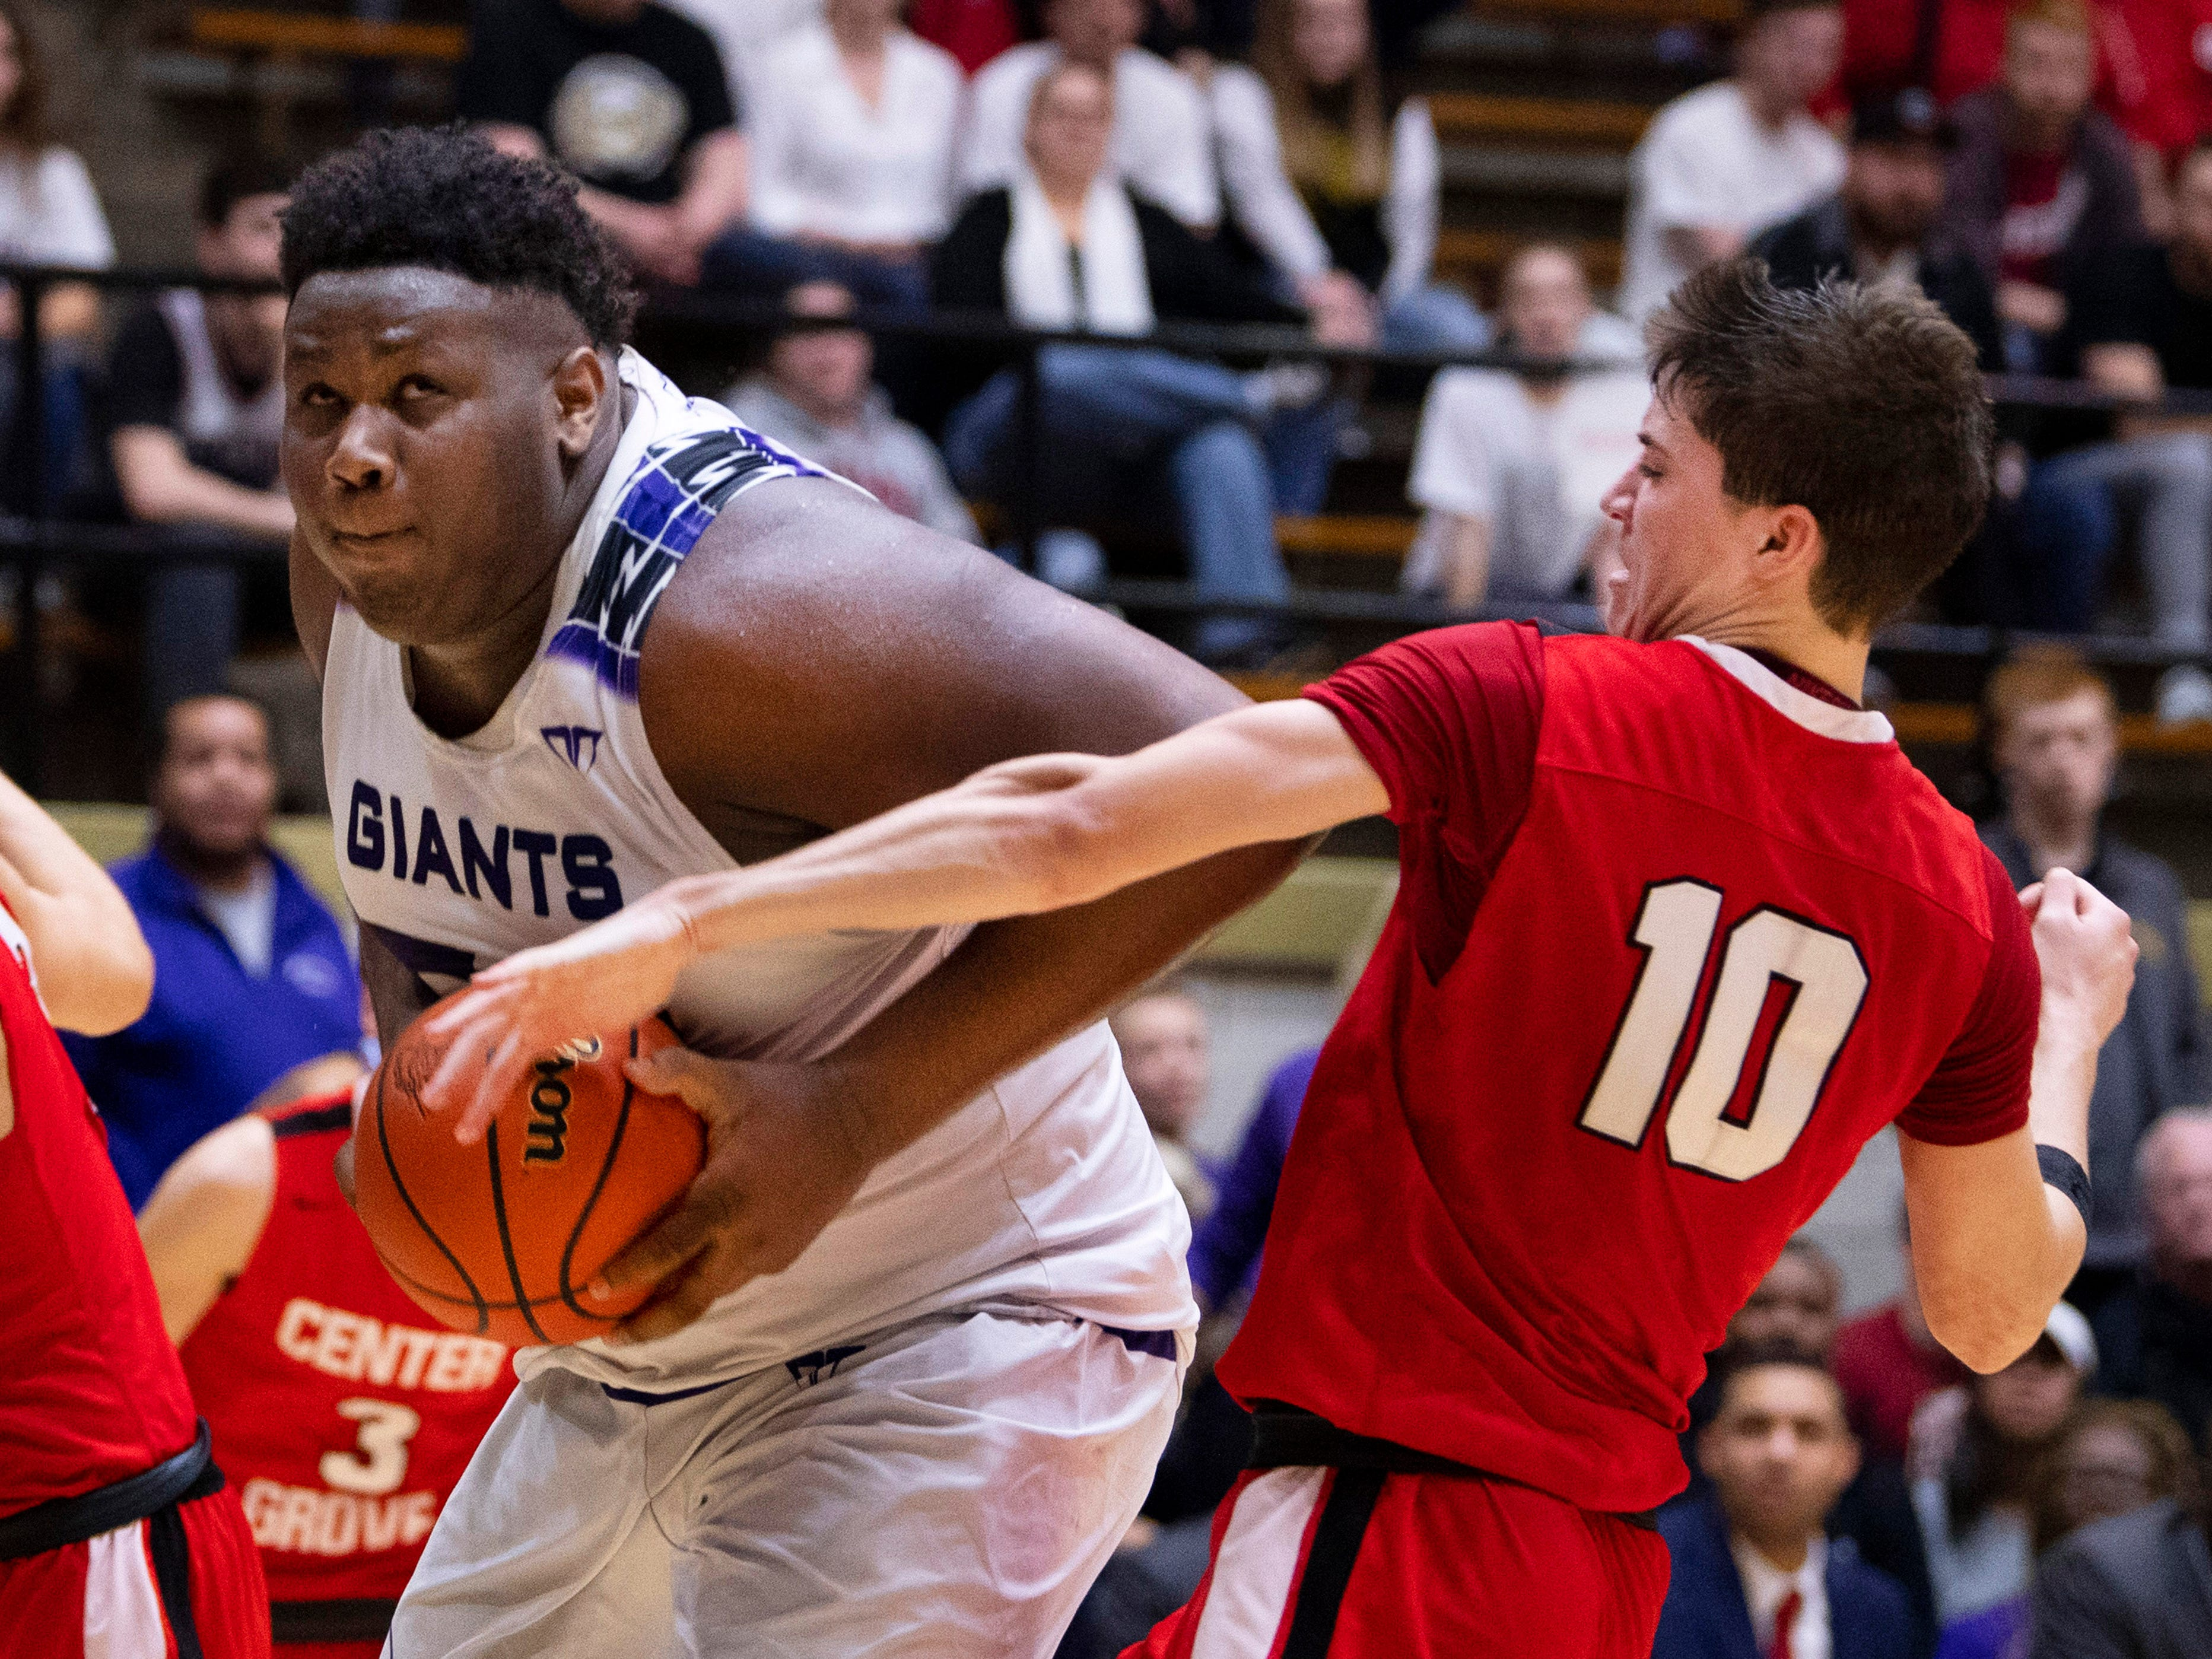 Ben Davis's Dawand Jones (54) powers to the basket for two points while being defended by Center Grove's Spencer Piercefield (10) and Justin DeGraaf (13) during the 4A Boys Indiana Semi-State Basketball Tournament at the Hatchet House in Washington, Ind., Saturday afternoon.